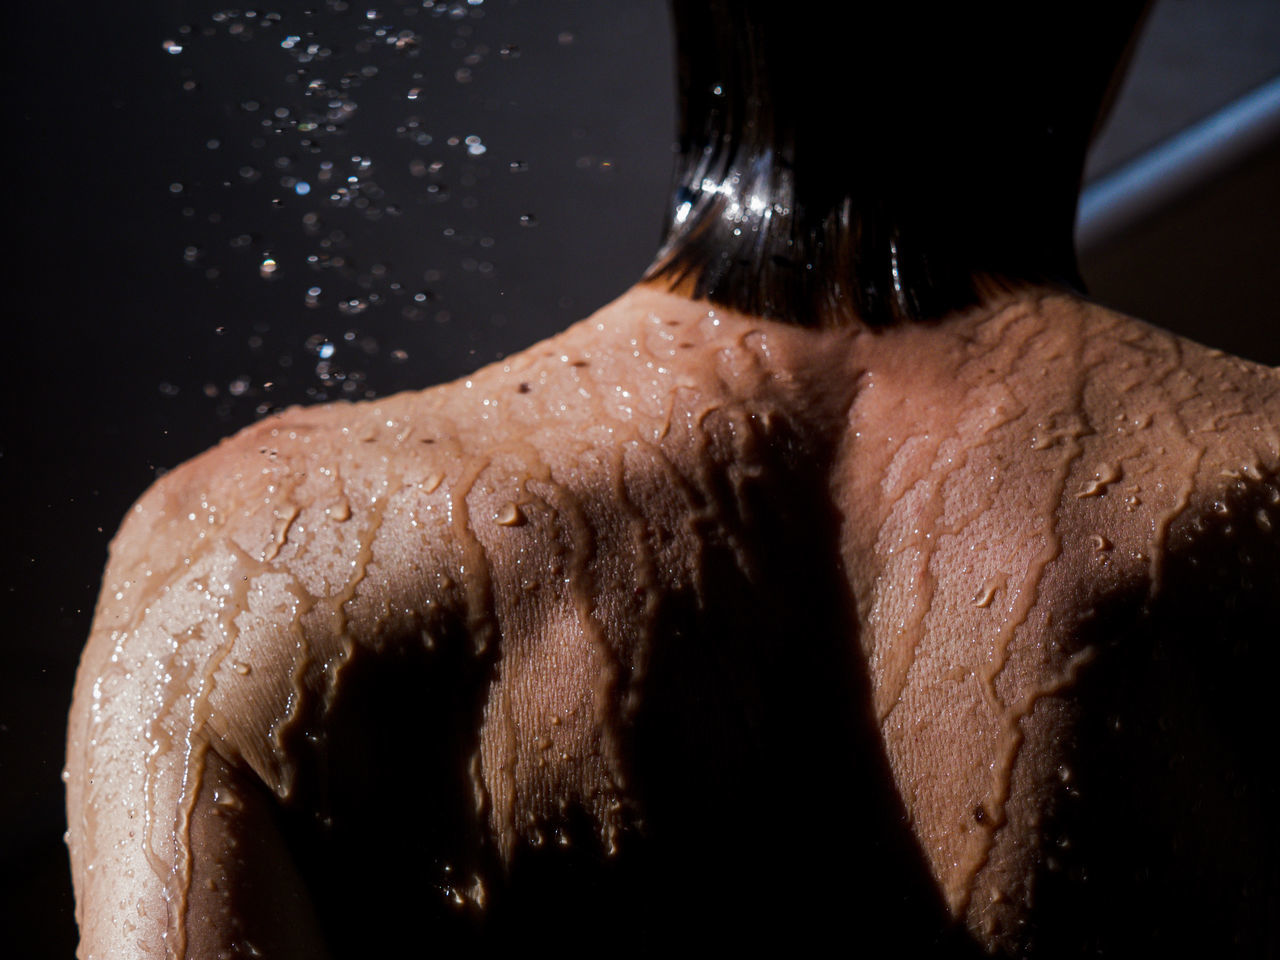 Black Background Close-up Glittering Human Body Part Human Hand Motion One Person People Shirtless Shower Splashing Studio Shot Water Young Adult